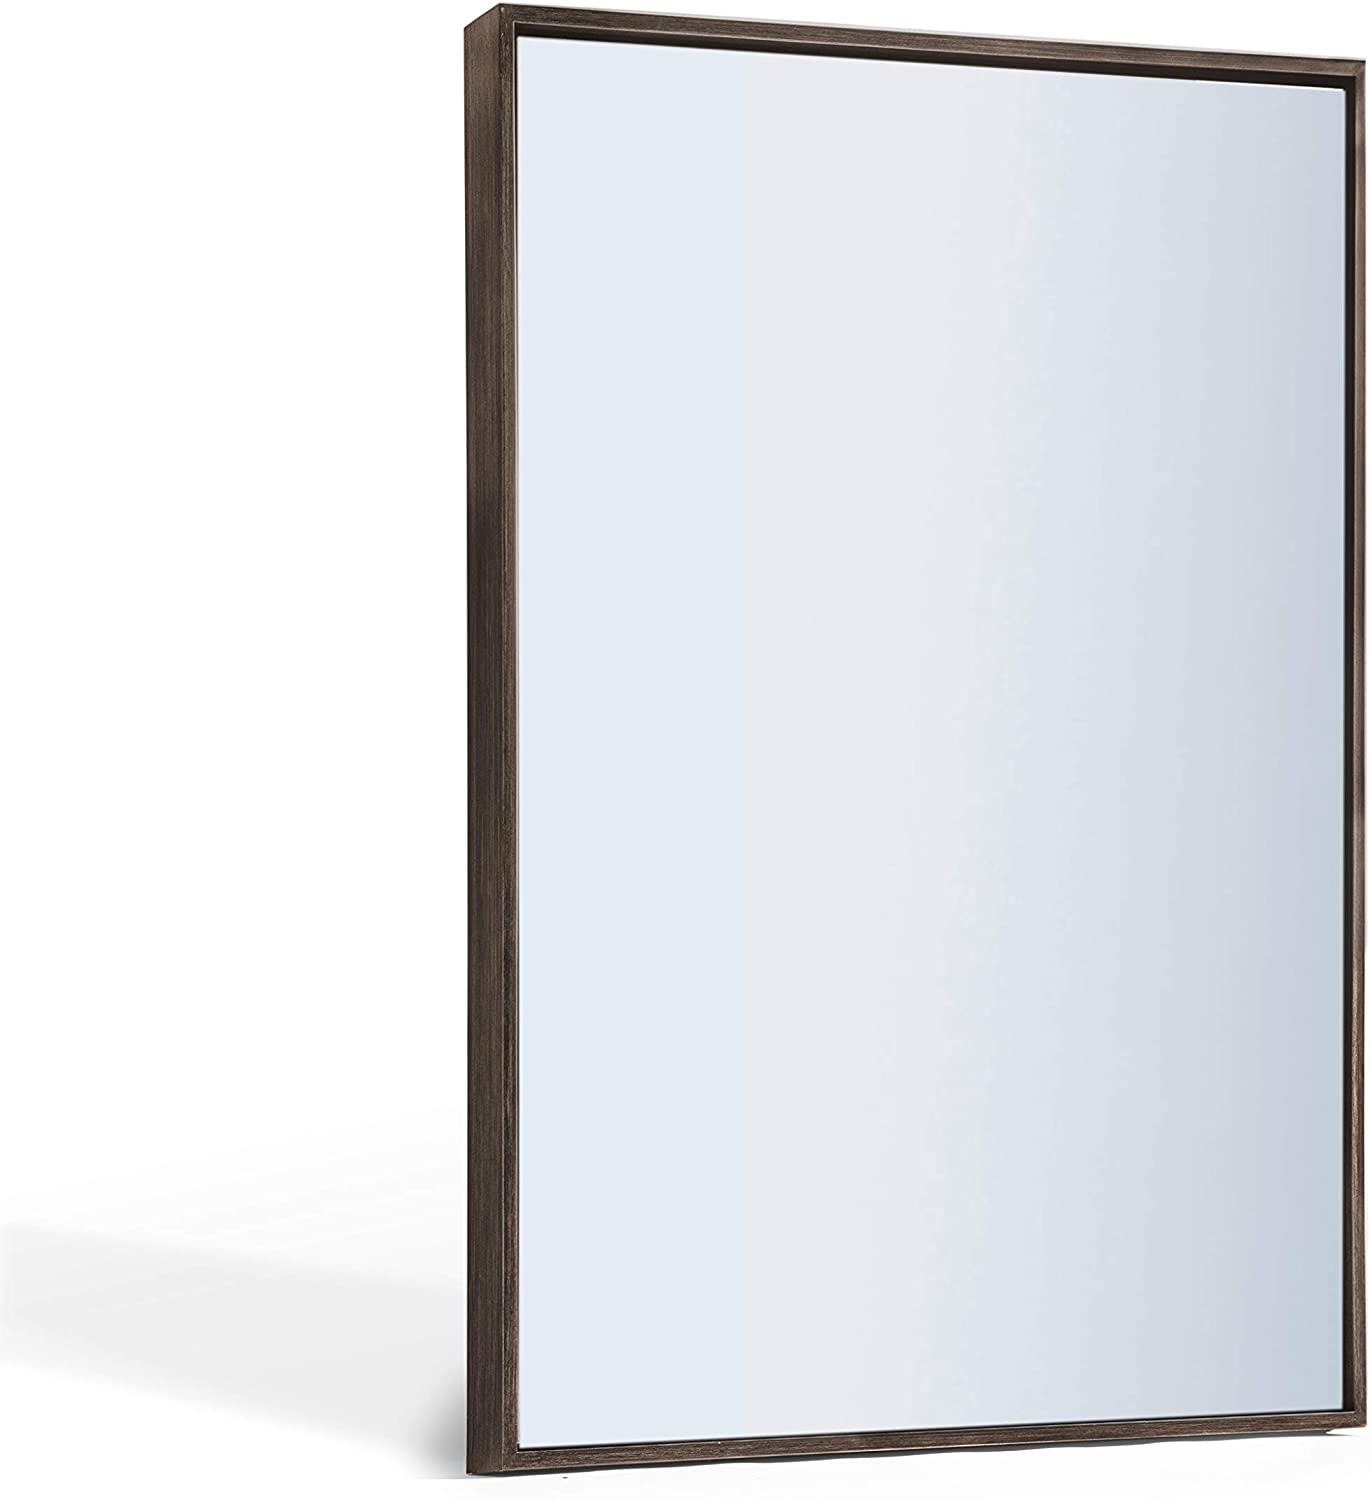 Amazon Com Andy Star Bathroom Mirror Rustic Walnut Wall Mirror 22 X30 Inch Contemporary Premium Silver Backed Floating Glass Panel Mirrored Rectangle Hangs Horizontal Or Vertical Kitchen Dining